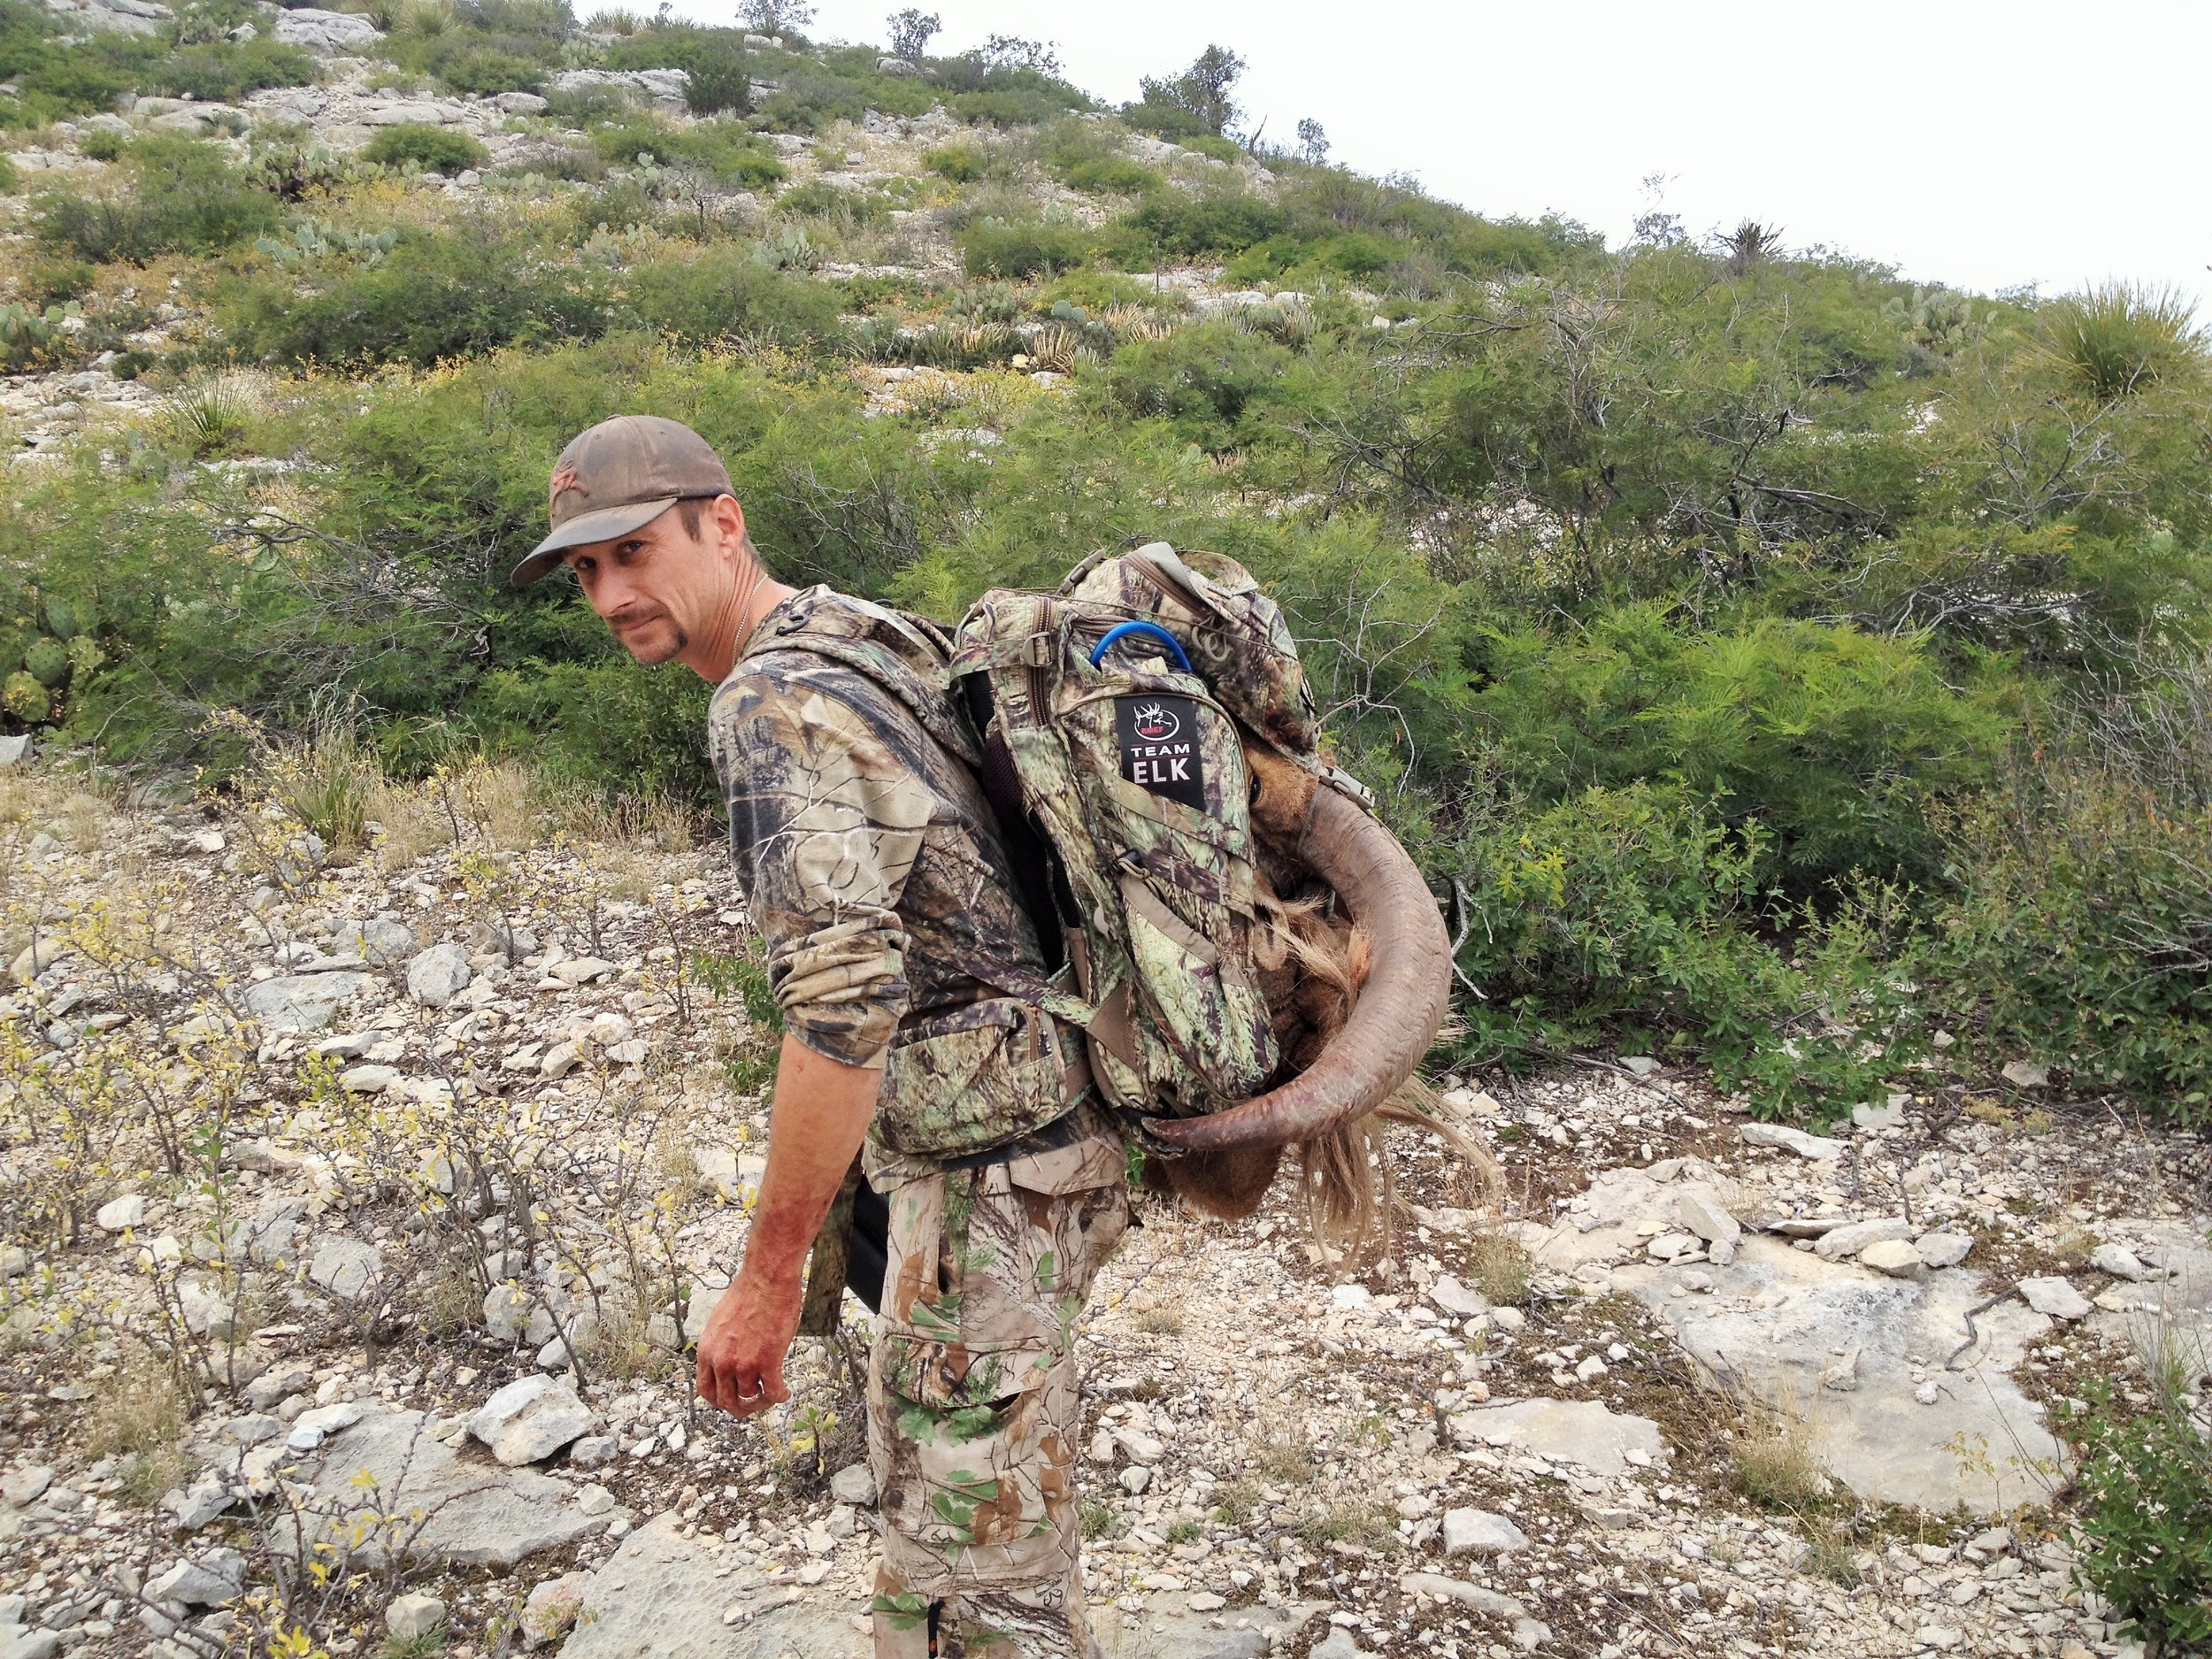 Clint Beckham heading back to camp after another successful hunt!